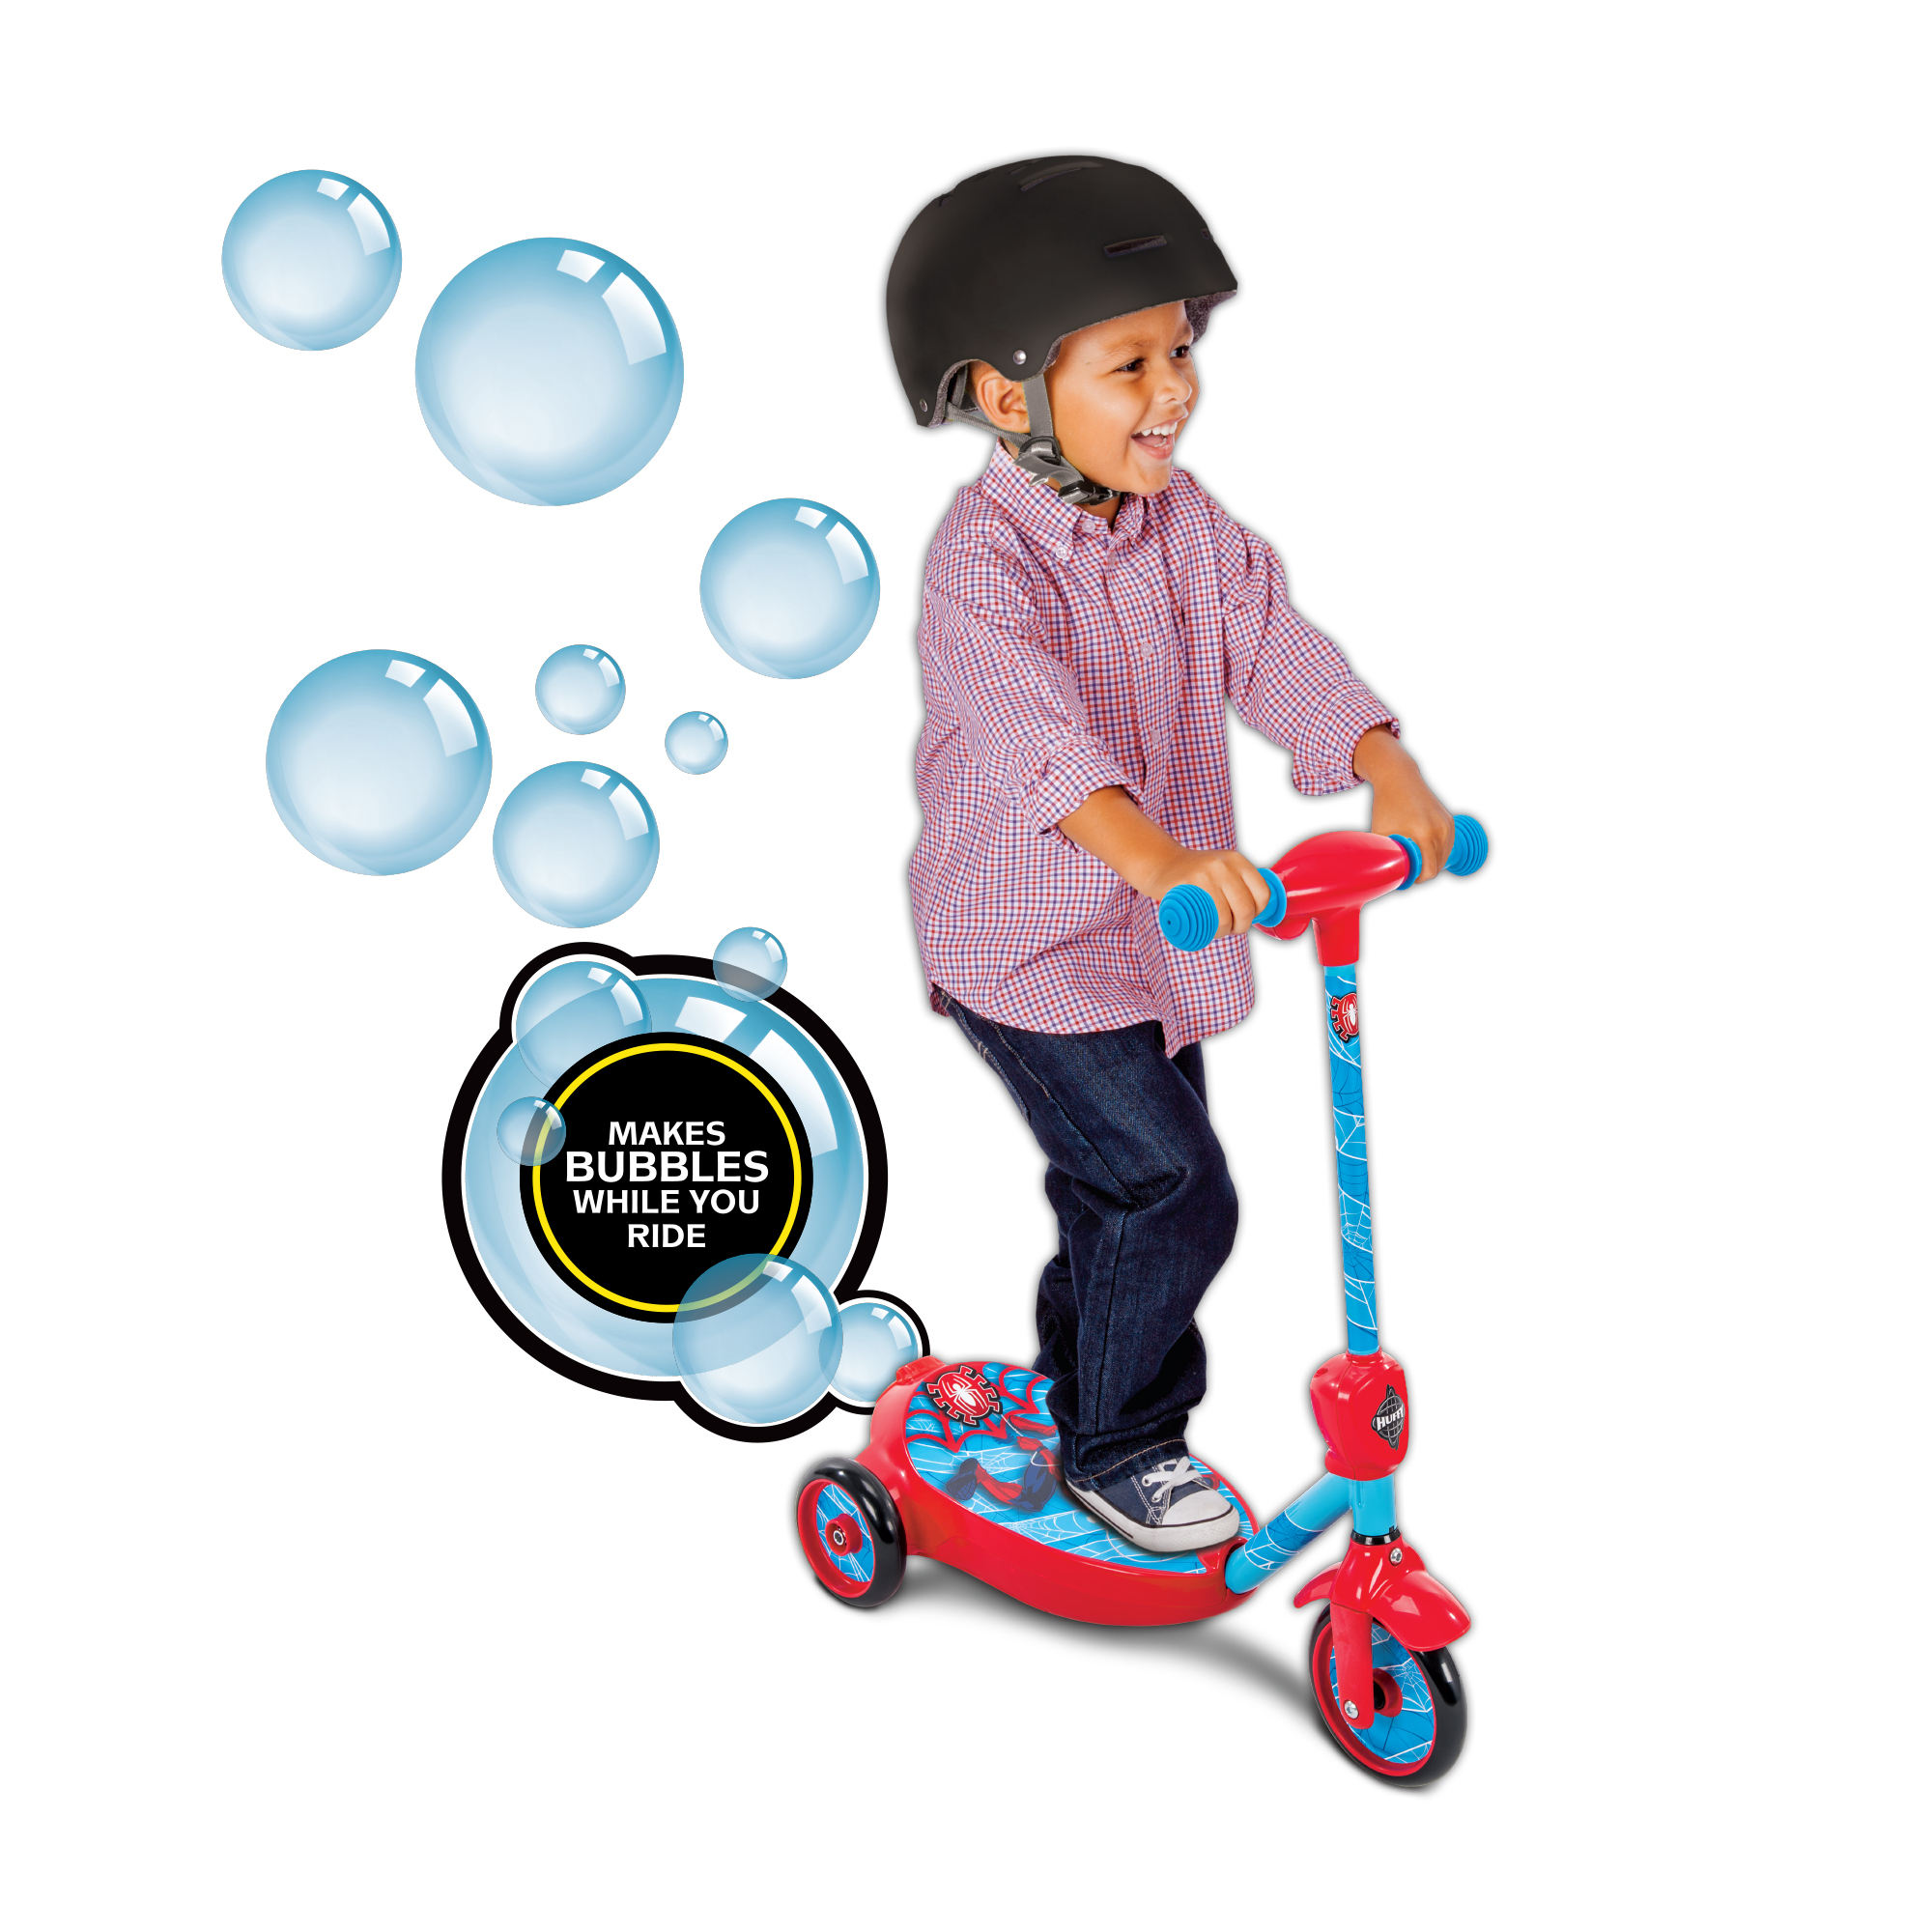 Kids Motor Scooters Multifunctional Cheap 3 In 1 3 6inch Wheels En 71 Safety Kids Children Bubble Motor Scooter Electrico Electric E-scooter